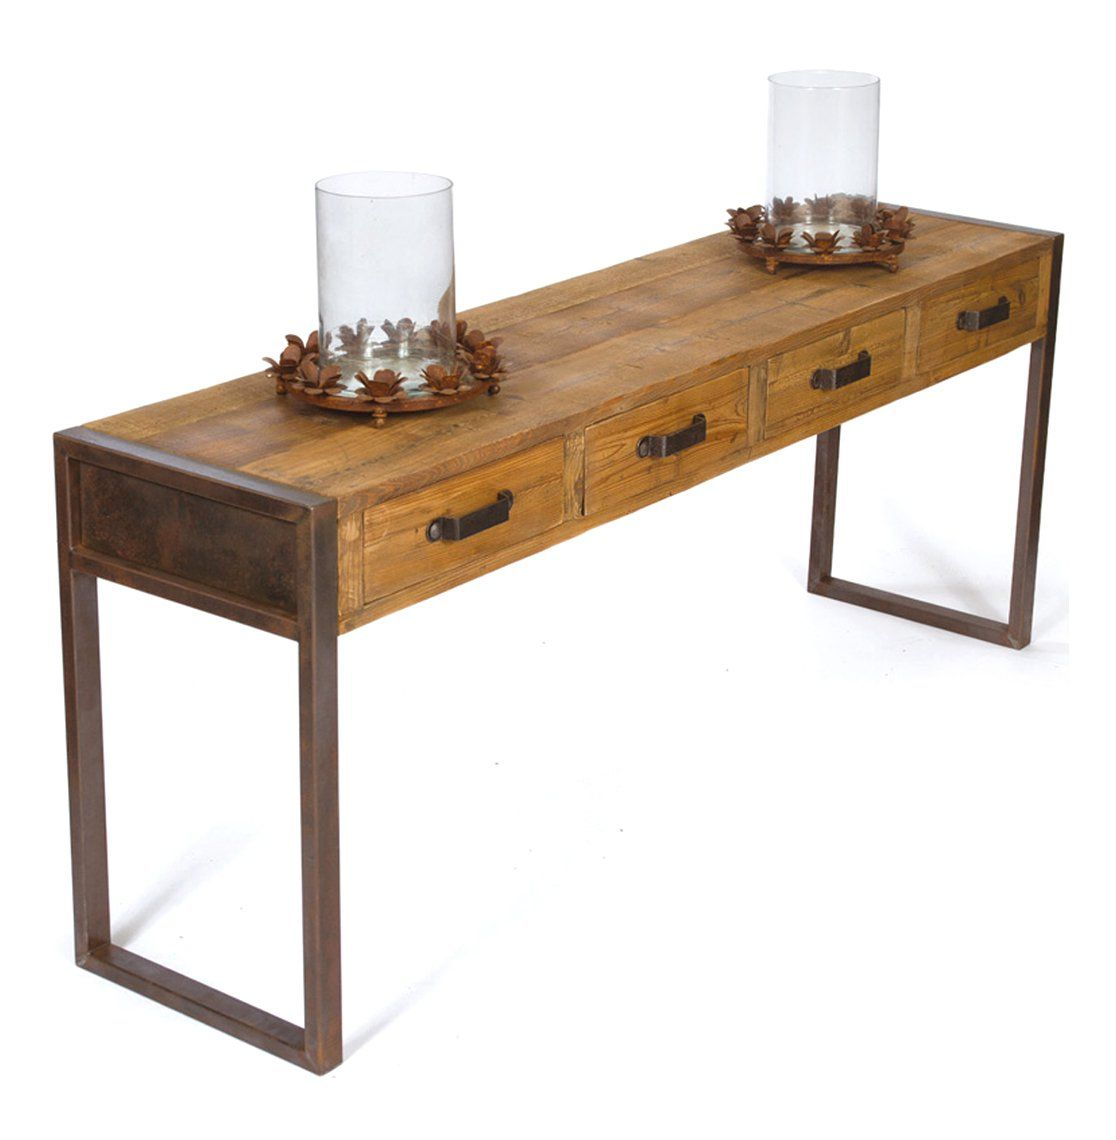 Long hallway table Mid Century Modern Furniture Long Console Table With Metal Base And Table Top Made From Reclaimed Wood With Drawers Plus Candle Holders For Narrow Hallway Spaces Ideas Fbchebercom Furniture Long Console Table With Metal Base And Table Top Made